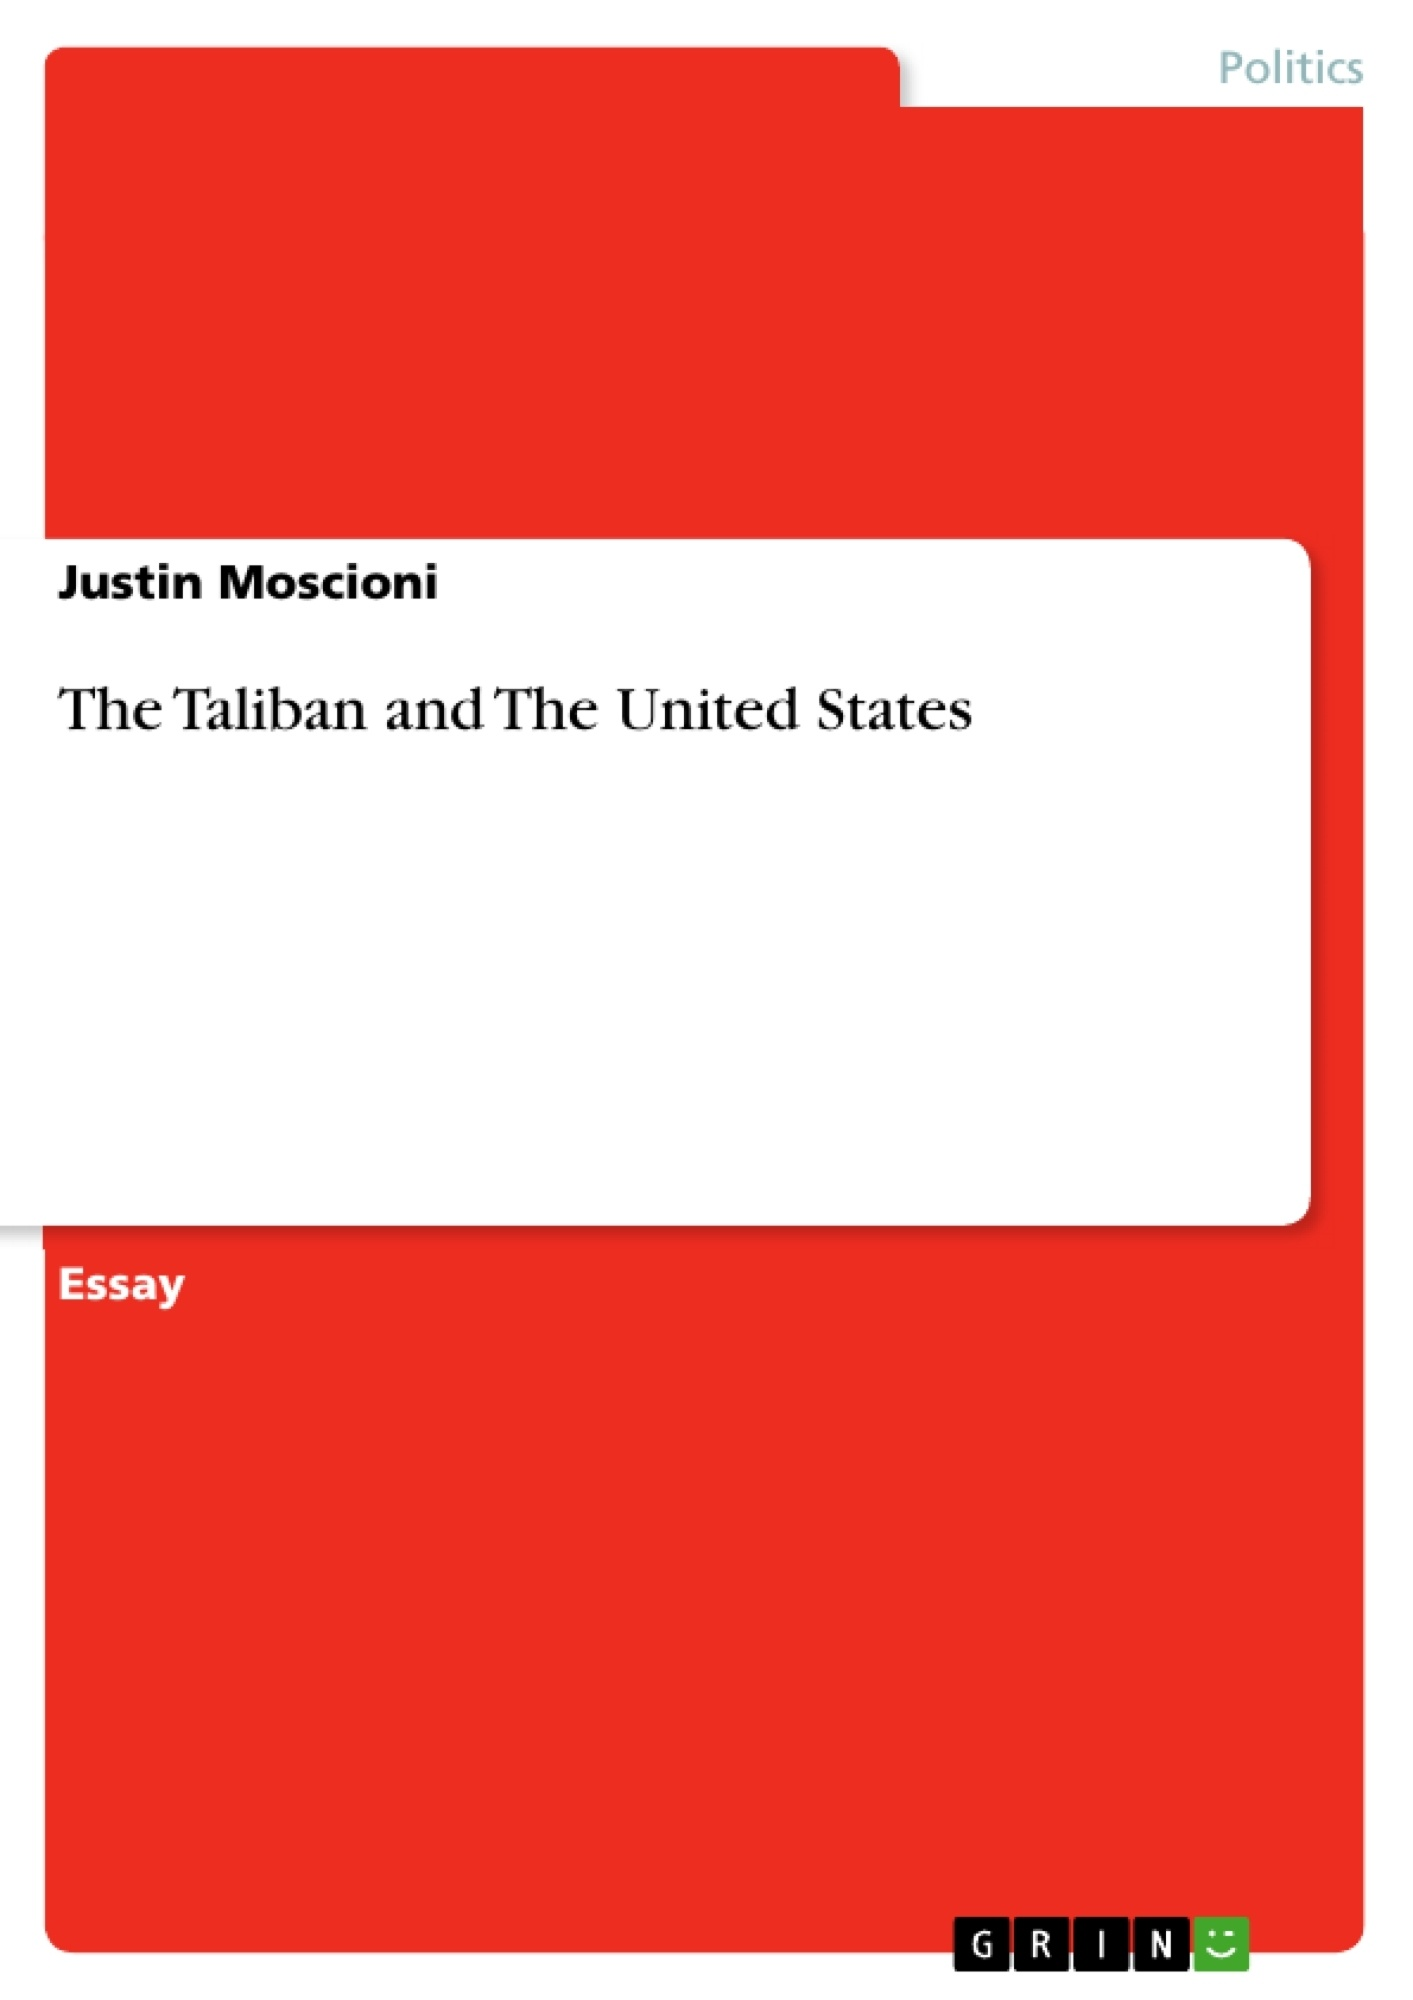 Title: The Taliban and The United States